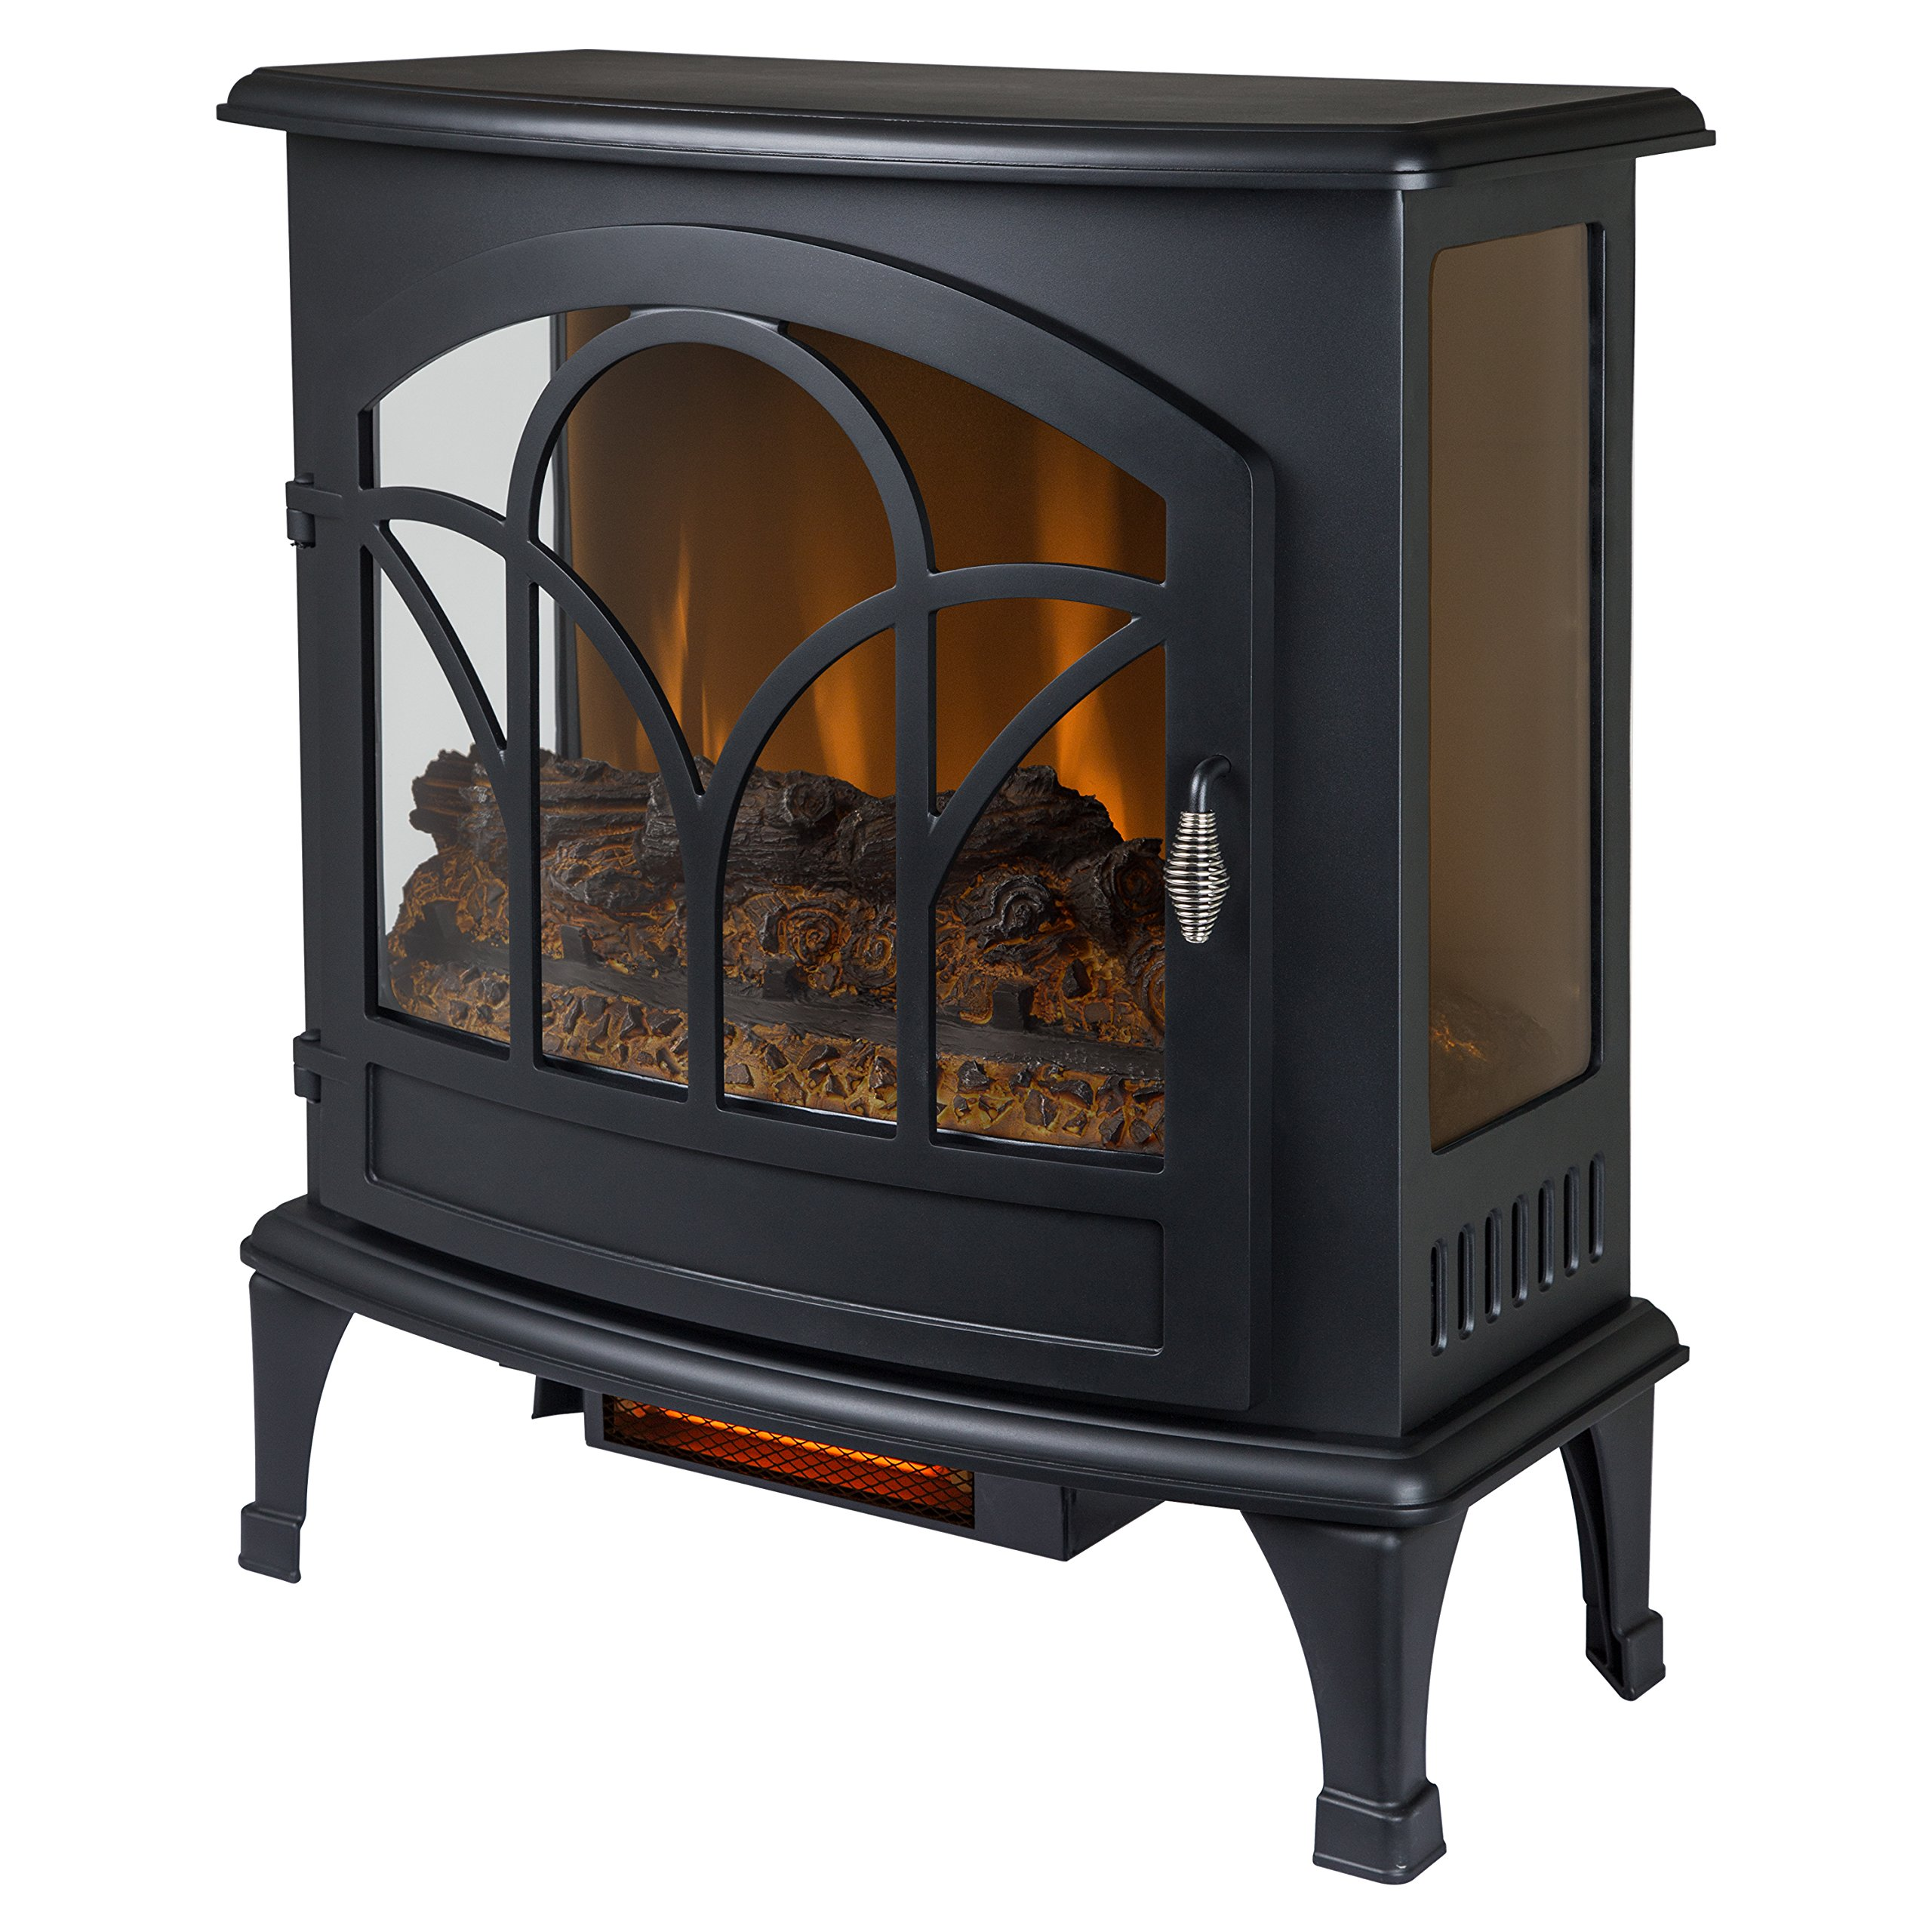 Muskoka Curved Front 25'' Infrared Panoramic Electric Stove - Black, by Muskoka